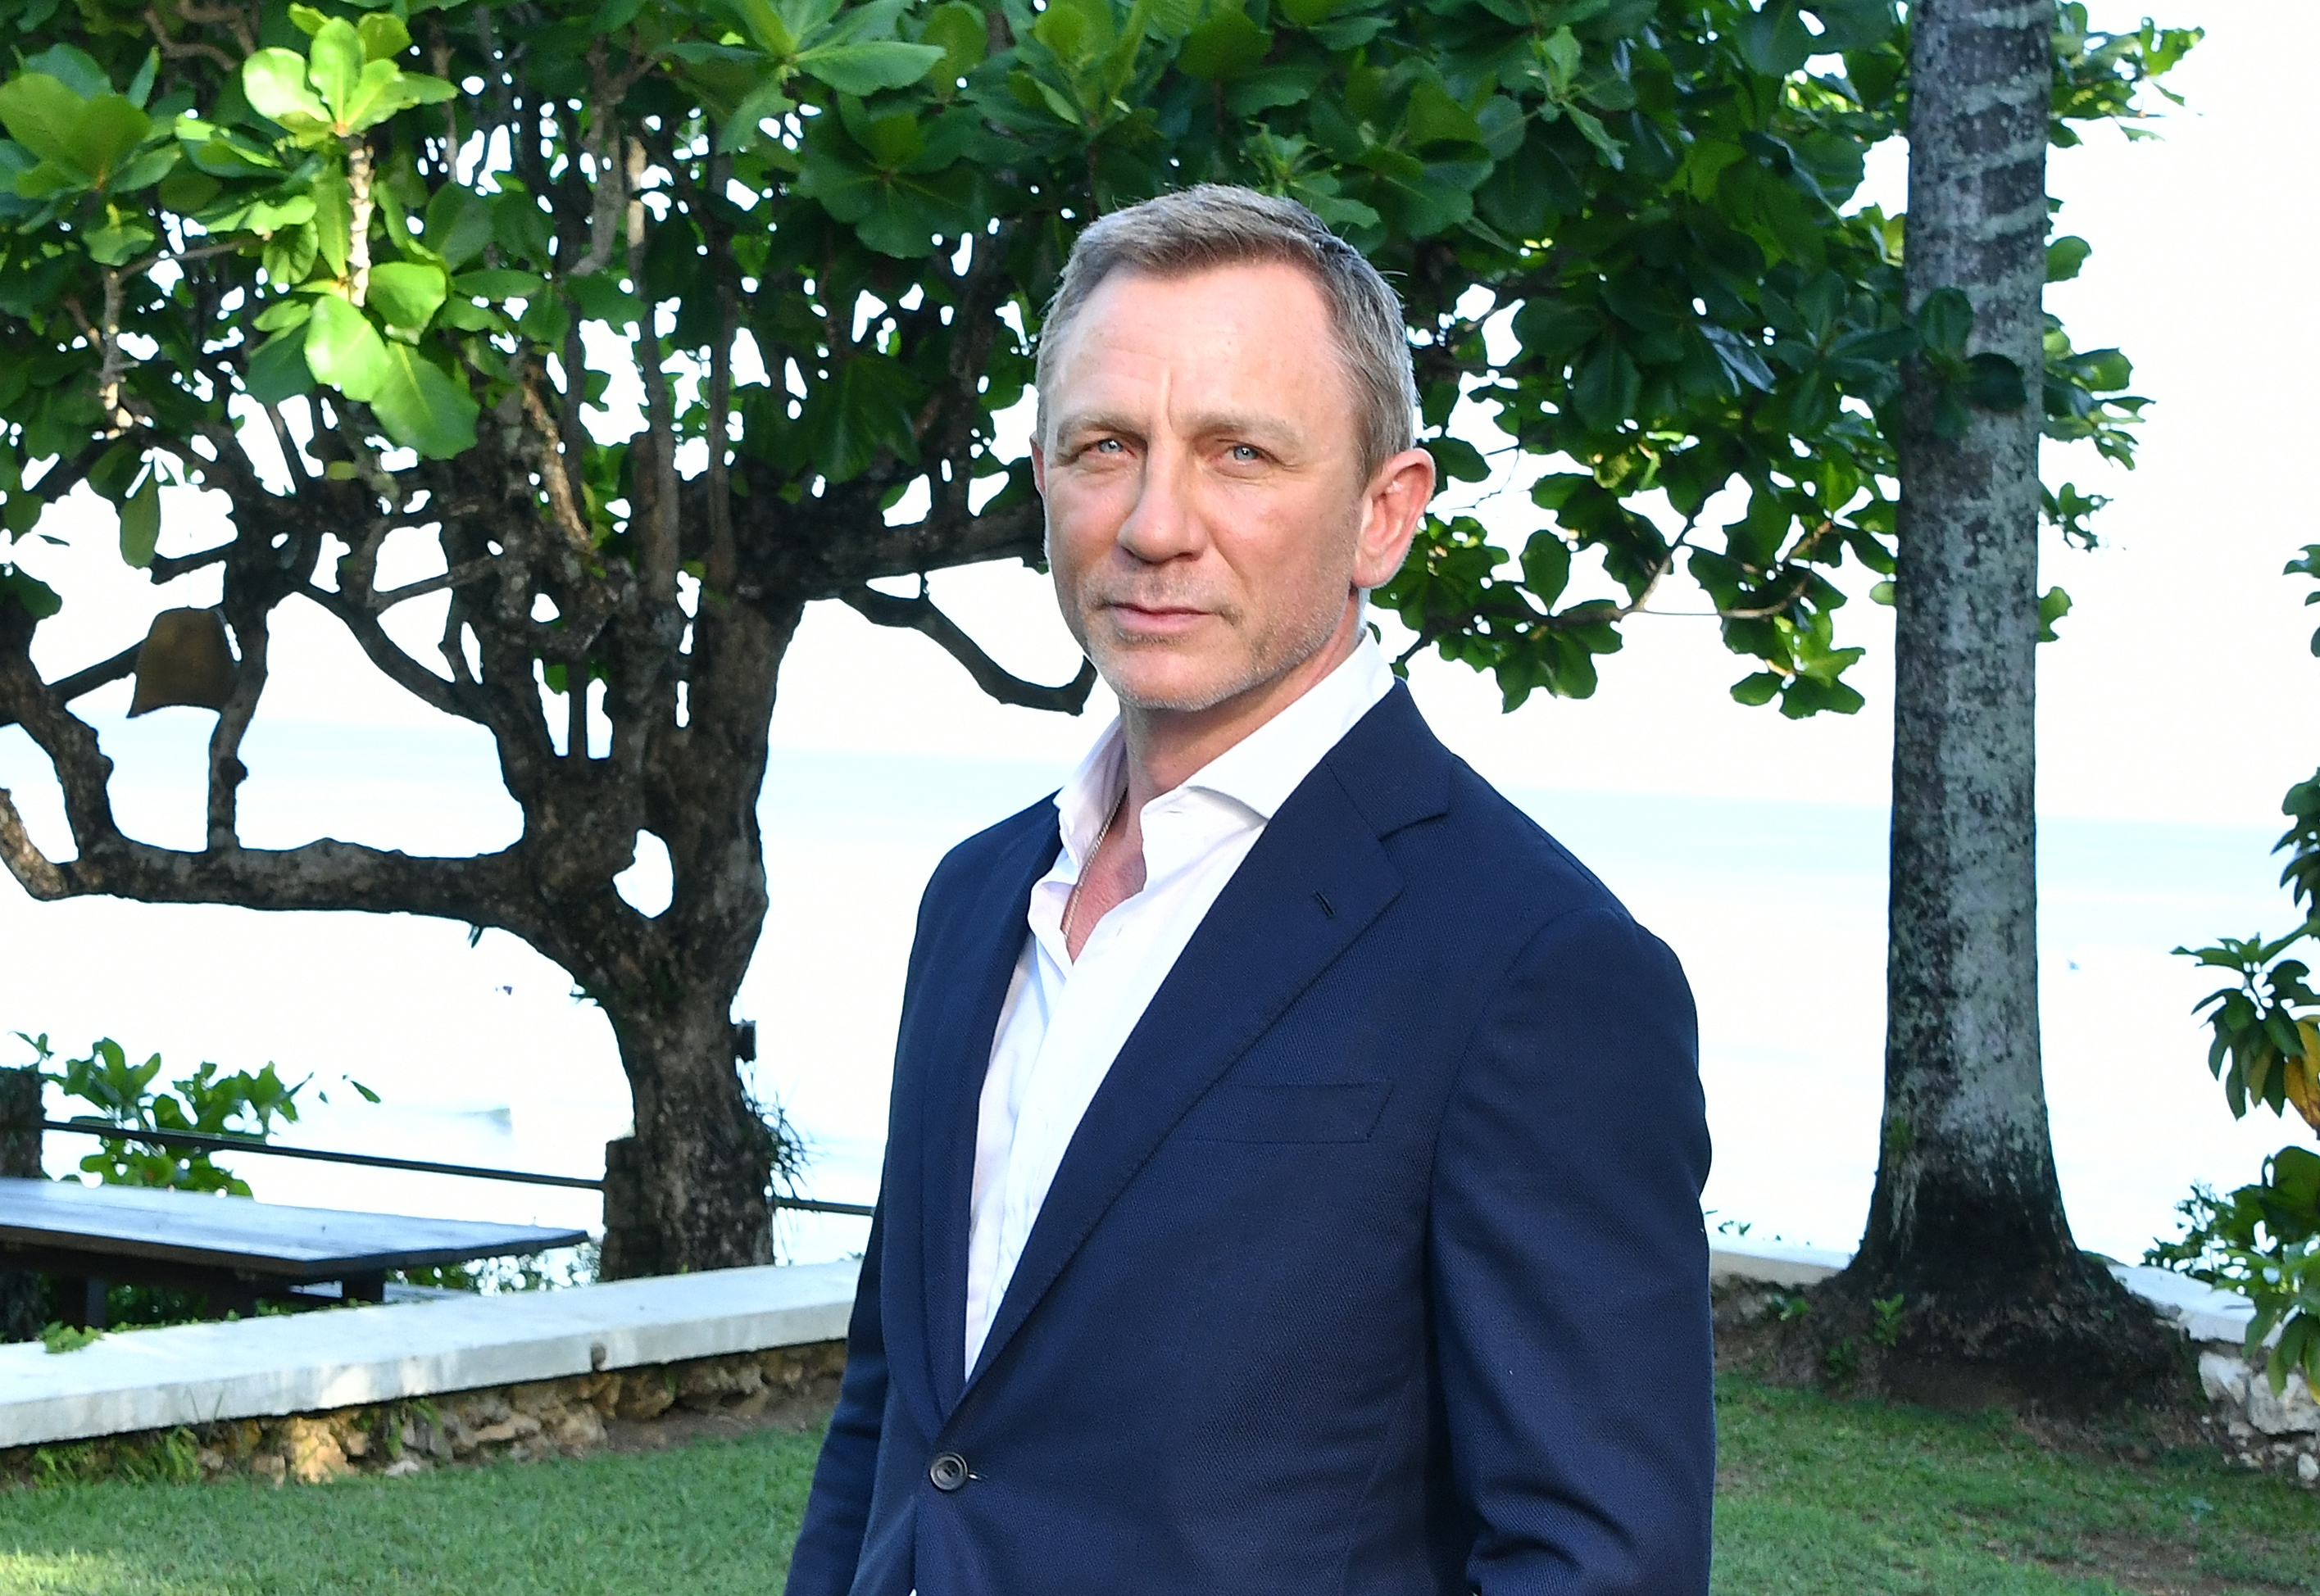 "MONTEGO BAY, JAMAICA - APRIL 25: Actor Daniel Craig attends the ""Bond 25"" film launch at Ian Fleming's Home ÒGoldenEye"" on April 25, 2019 in Montego Bay, Jamaica. (Photo by Slaven Vlasic/Getty Images for Metro Goldwyn Mayer Pictures)"